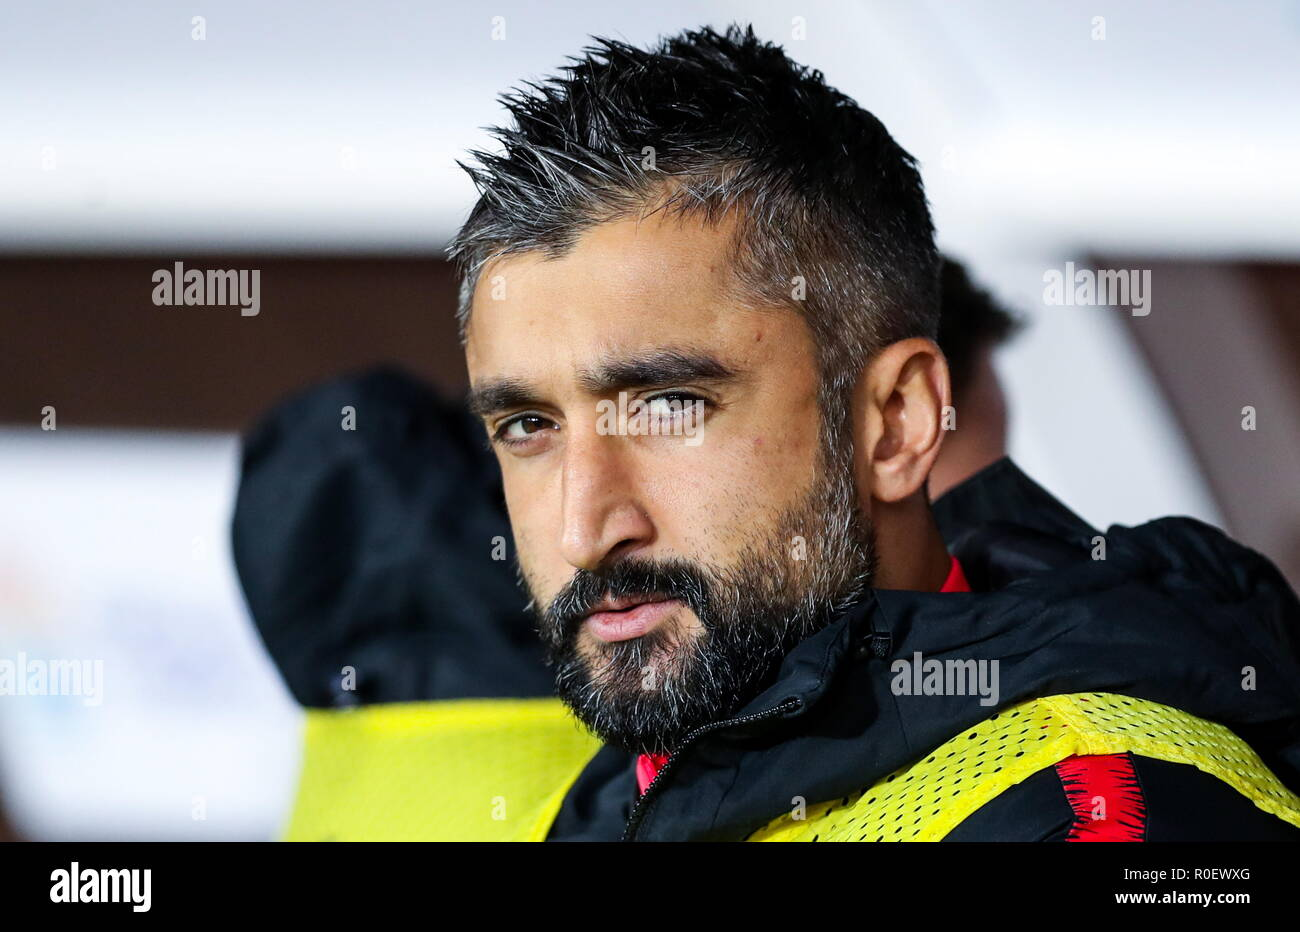 Moscow, Russia. 04th Nov, 2018. MOSCOW, RUSSIA - NOVEMBER 4, 2018: Spartak Moscow's Alexander Samedov during a 2018/2019 Russian Football Premiere League Round 13 football match between Spartak Moscow and Ural Yekaterinburg at Otrkytiye Arena. Sergei Savostyanov/TASS Credit: ITAR-TASS News Agency/Alamy Live News - Stock Image